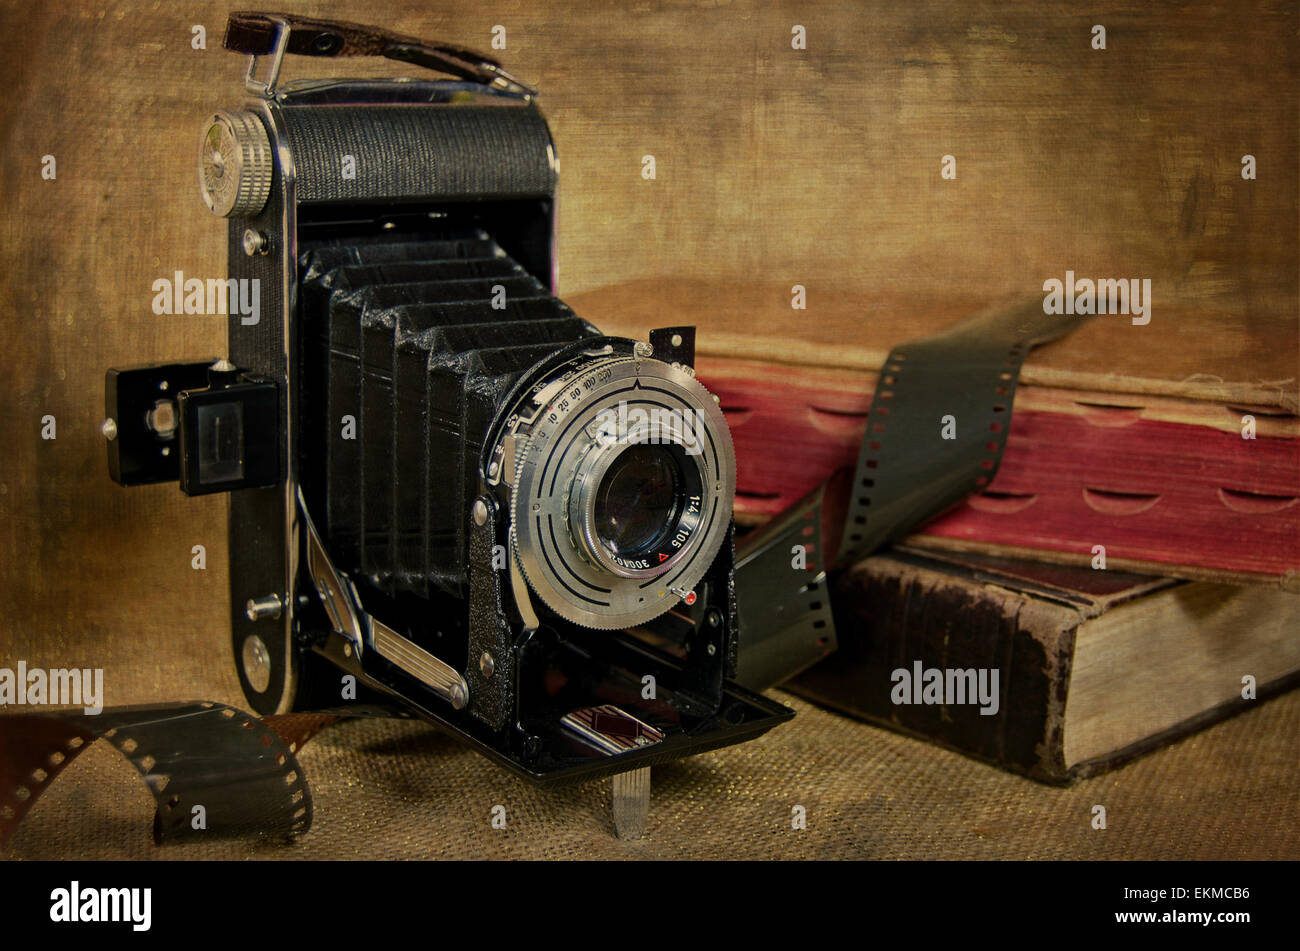 Vintage bellows camera, film and old books with texture overlay. - Stock Image